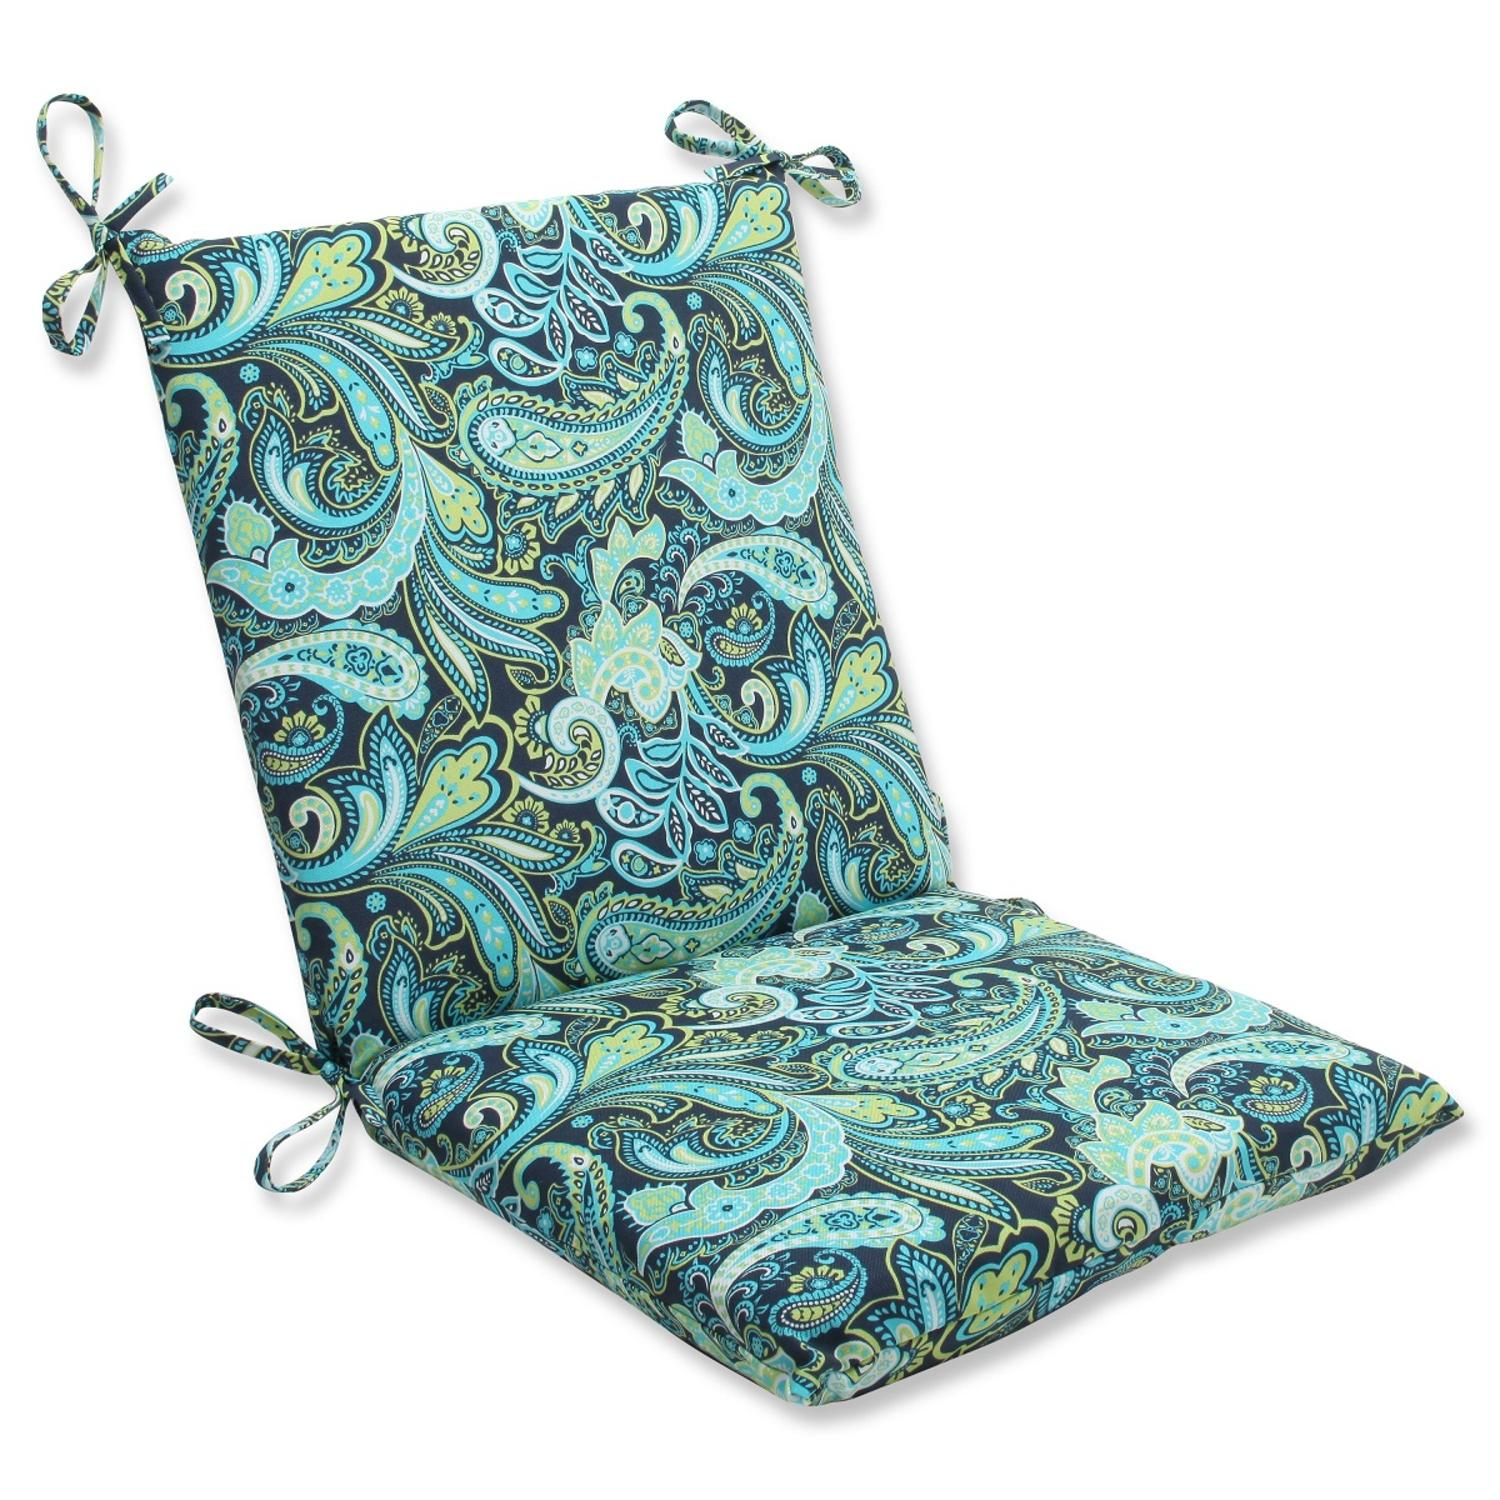 "36.5"" Sogno Paisley Blue, Green and White Outdoor Patio Chair Cushion"